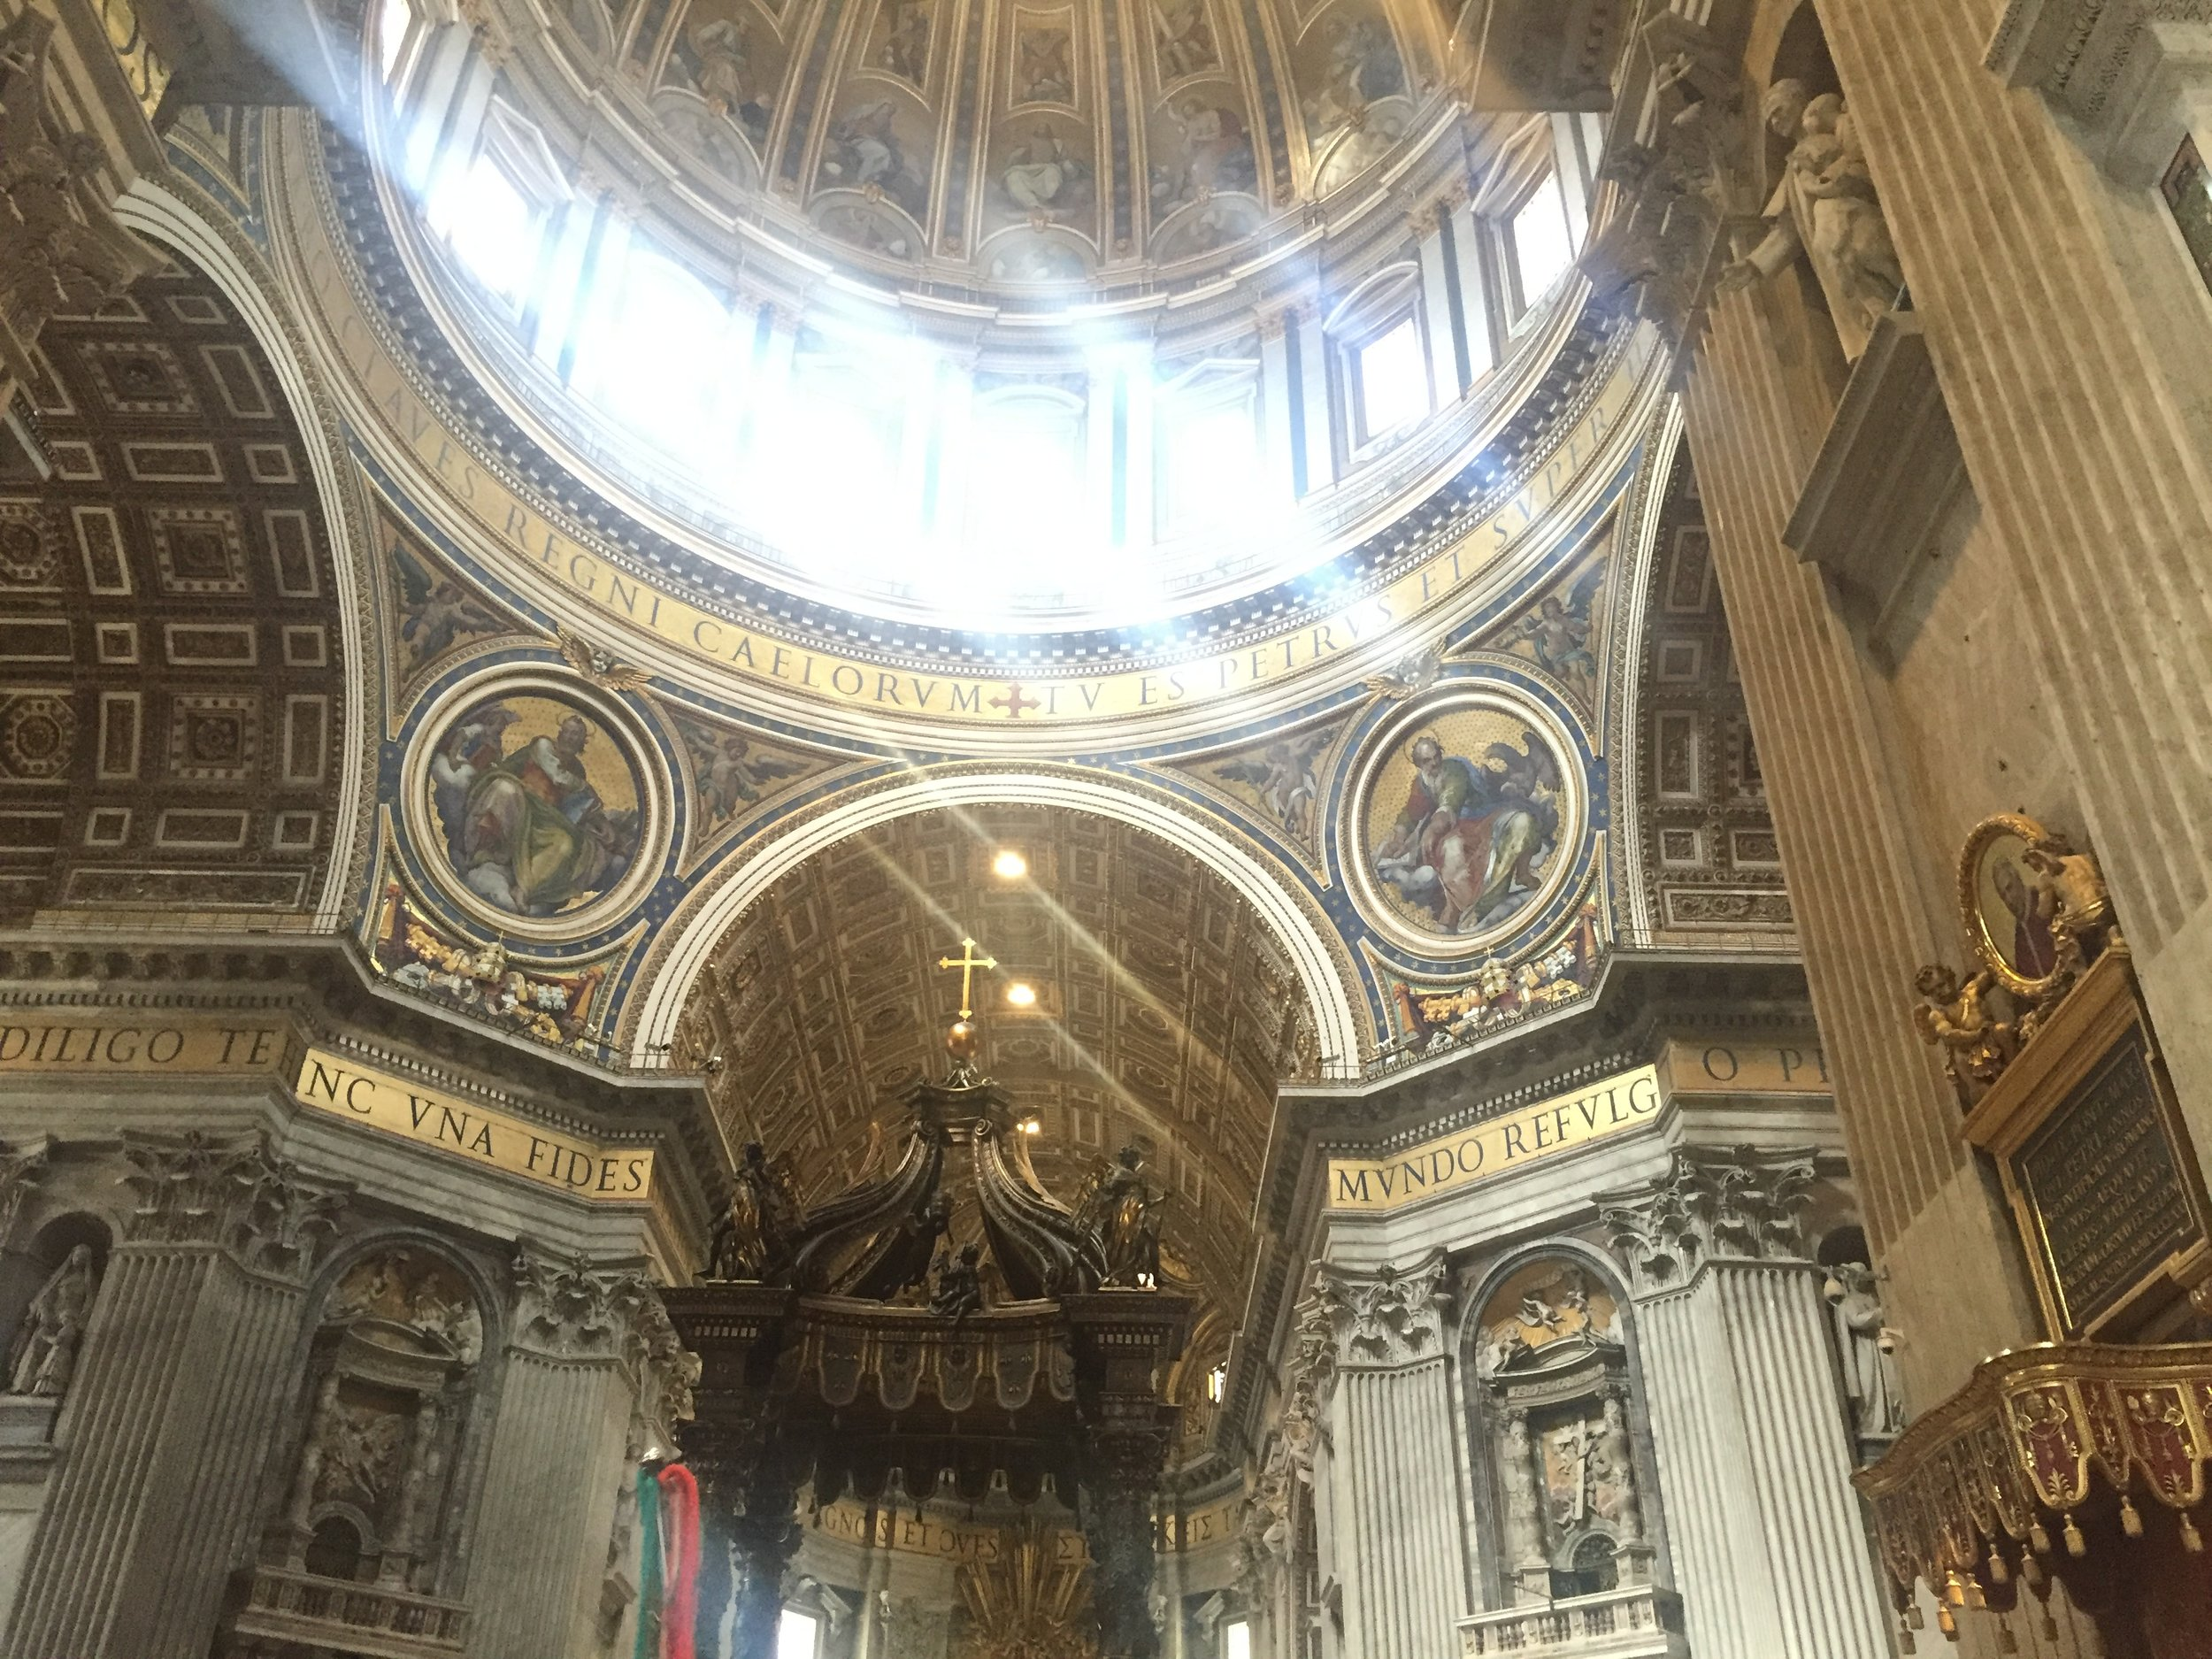 Inside St. Peter's was beautiful!